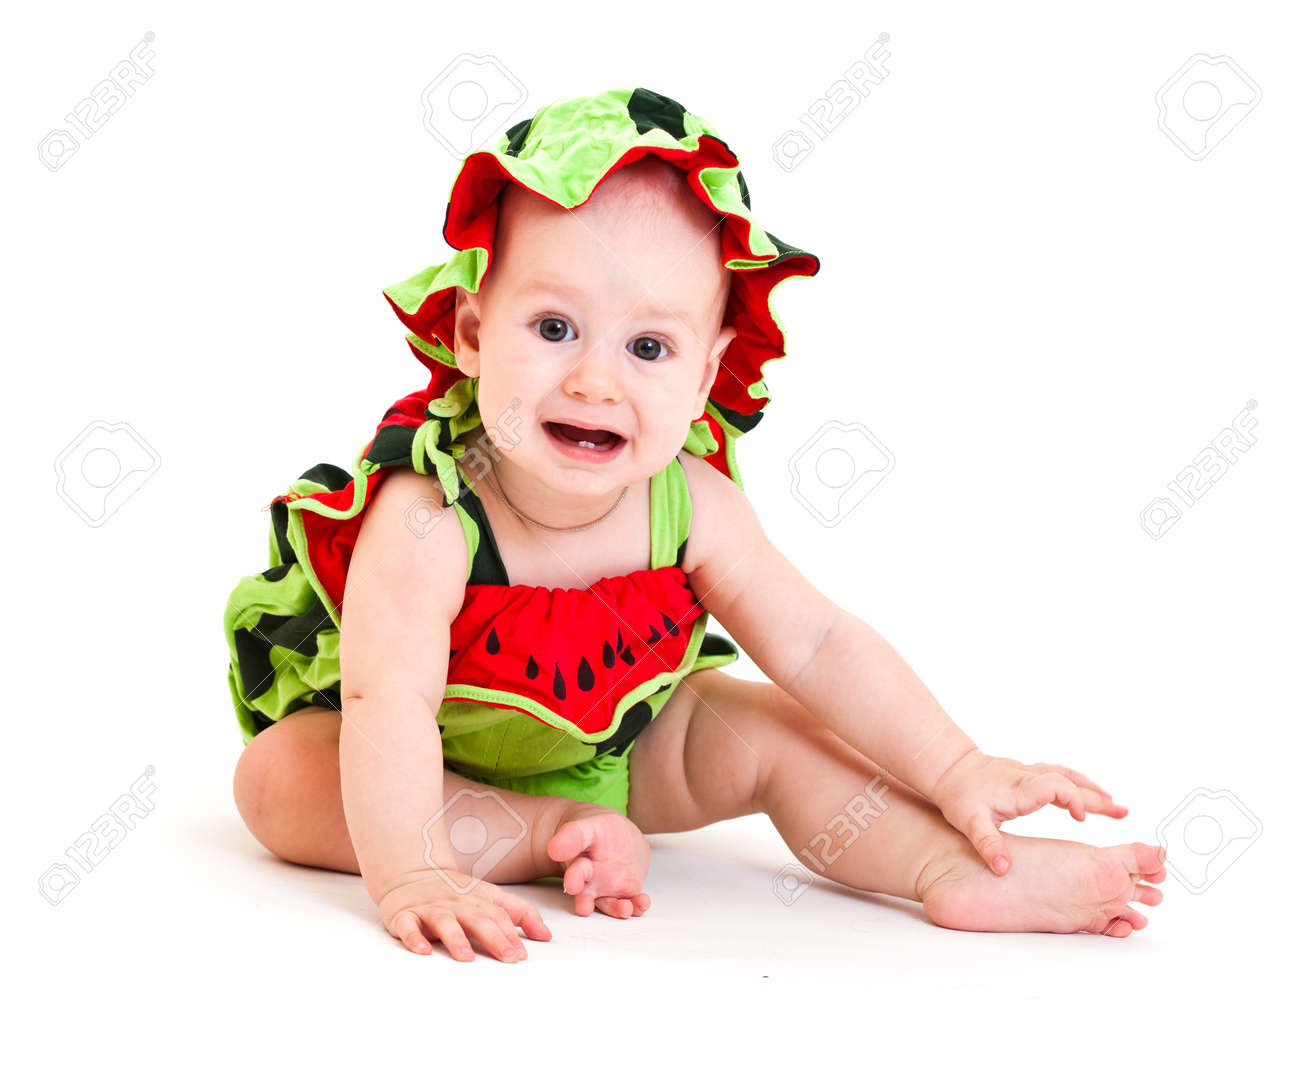 Portrait of cute little boy in watermelon costume. Isolated on white Stock Photo - 11282205  sc 1 st  123RF.com & Portrait Of Cute Little Boy In Watermelon Costume. Isolated On ...